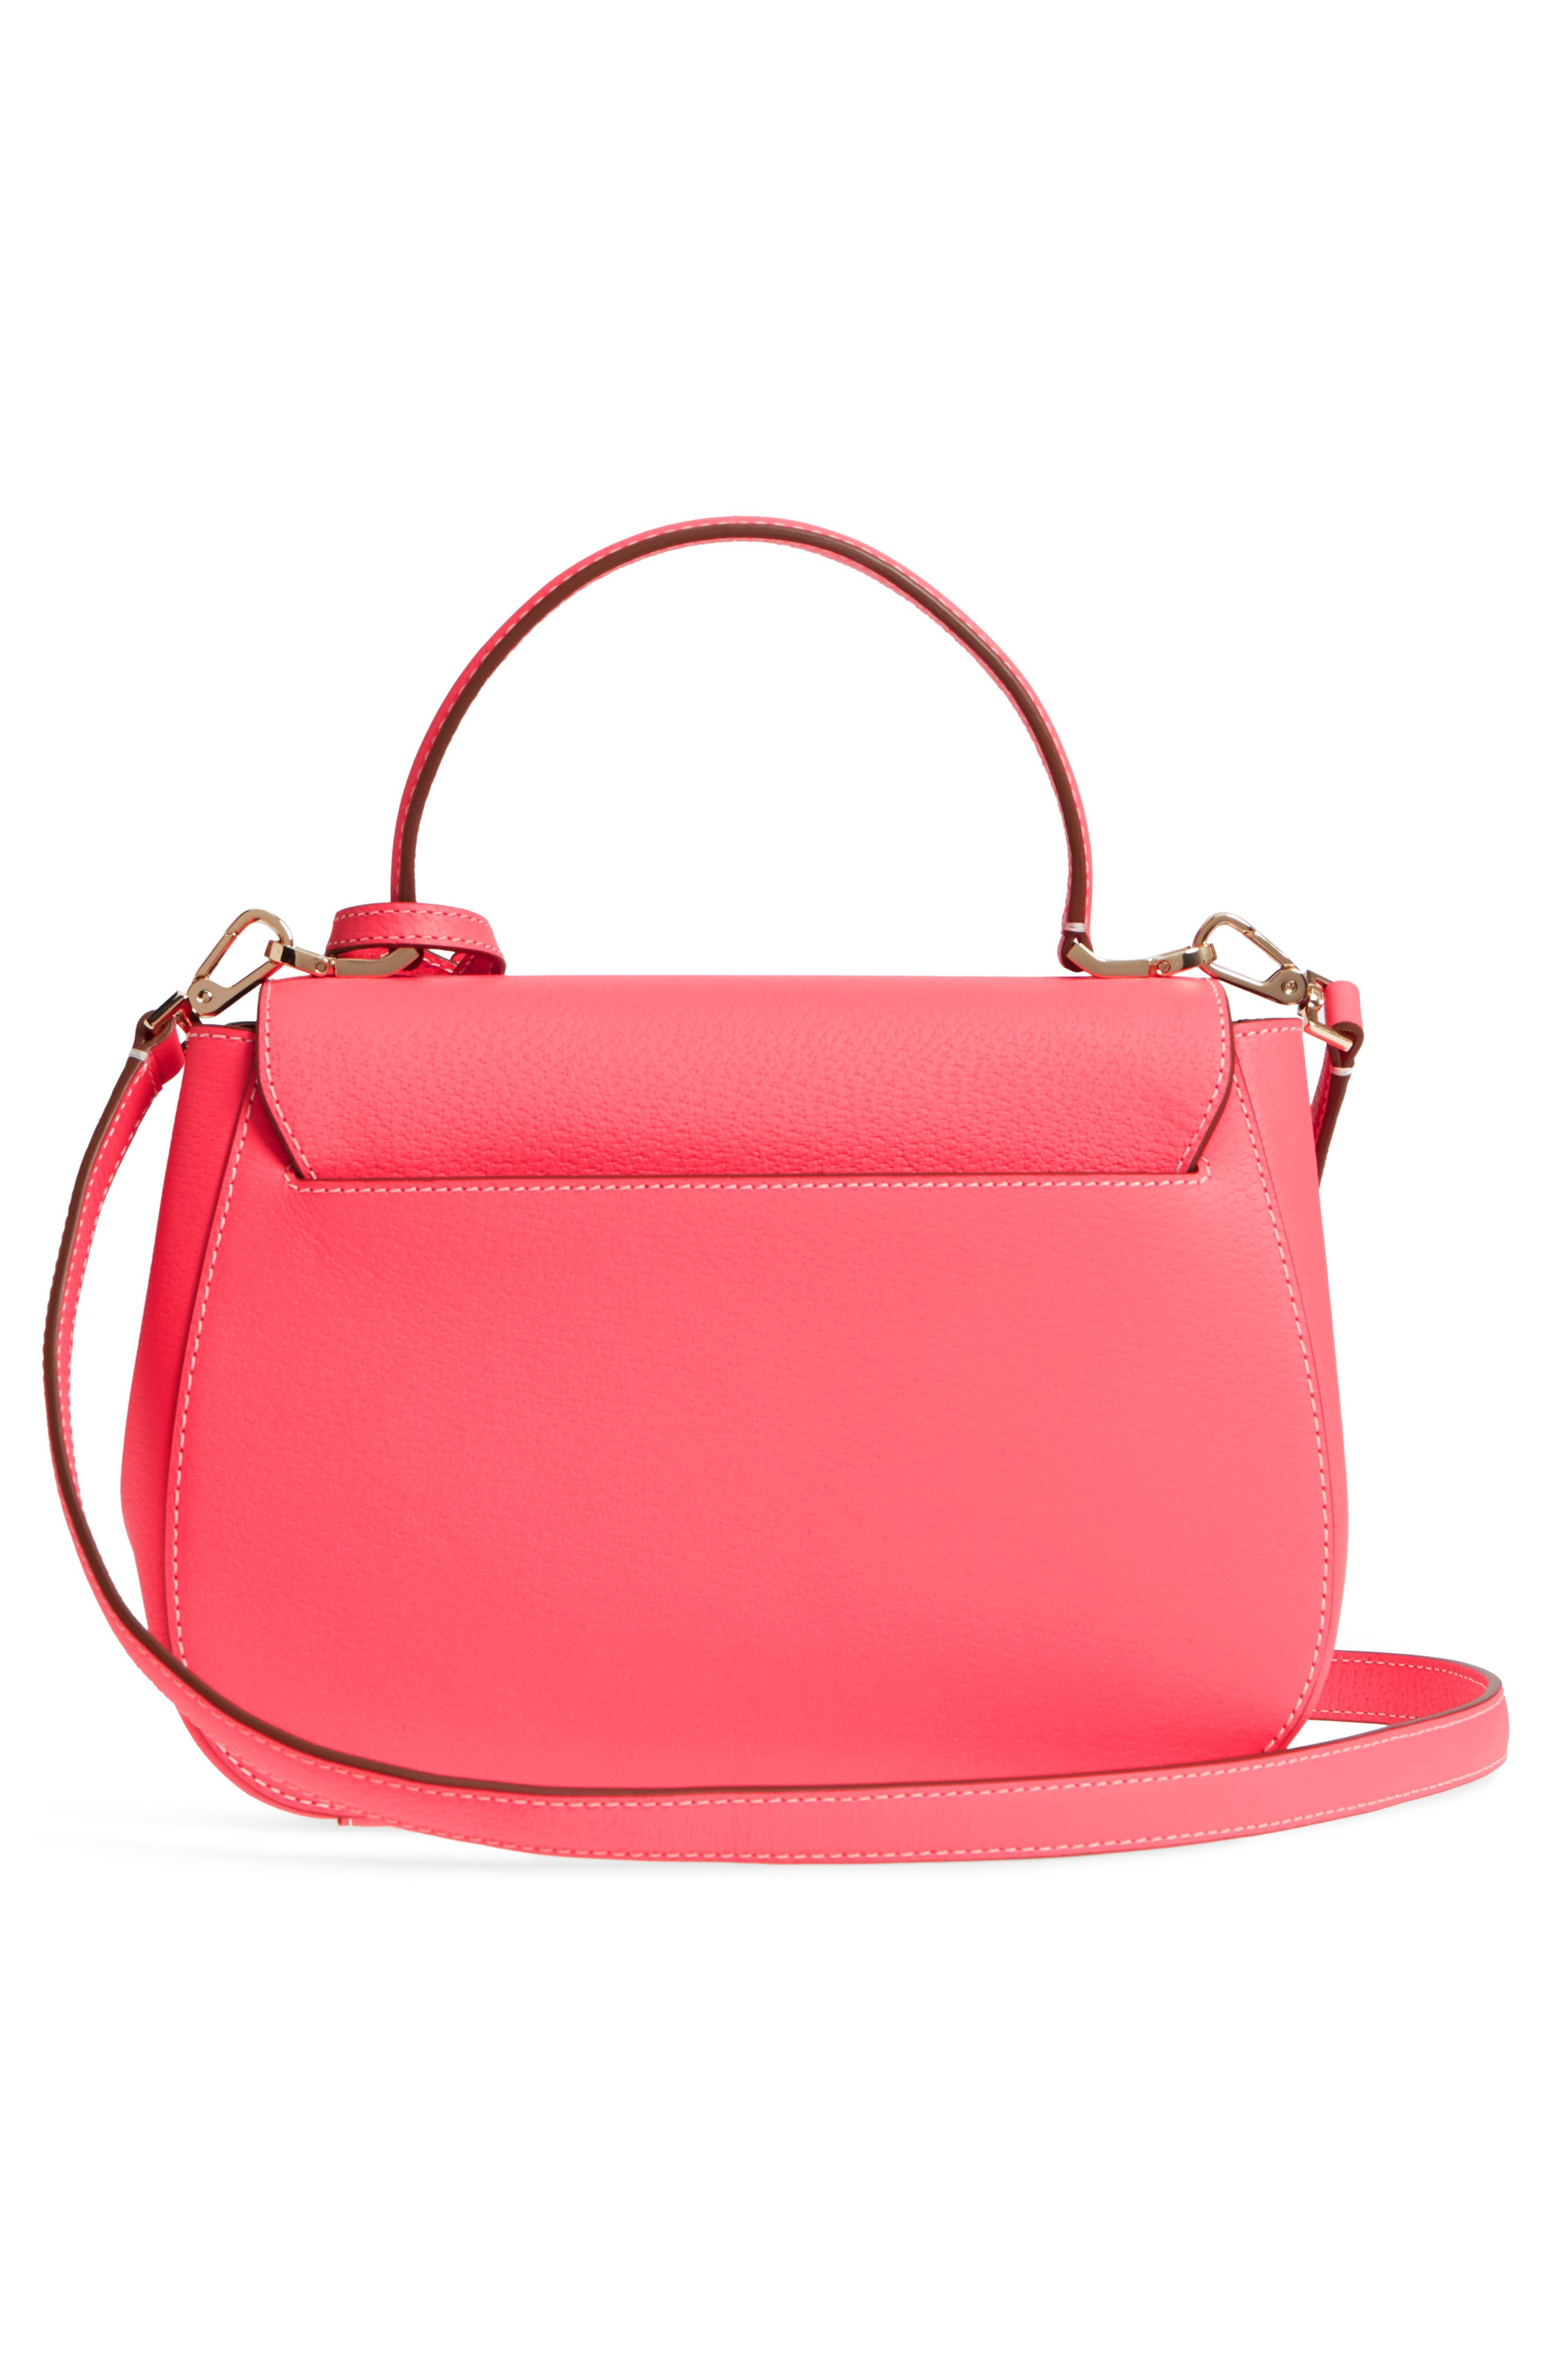 thompson street - justina leather satchel,                             Alternate thumbnail 3, color,                             Bright Flamingo